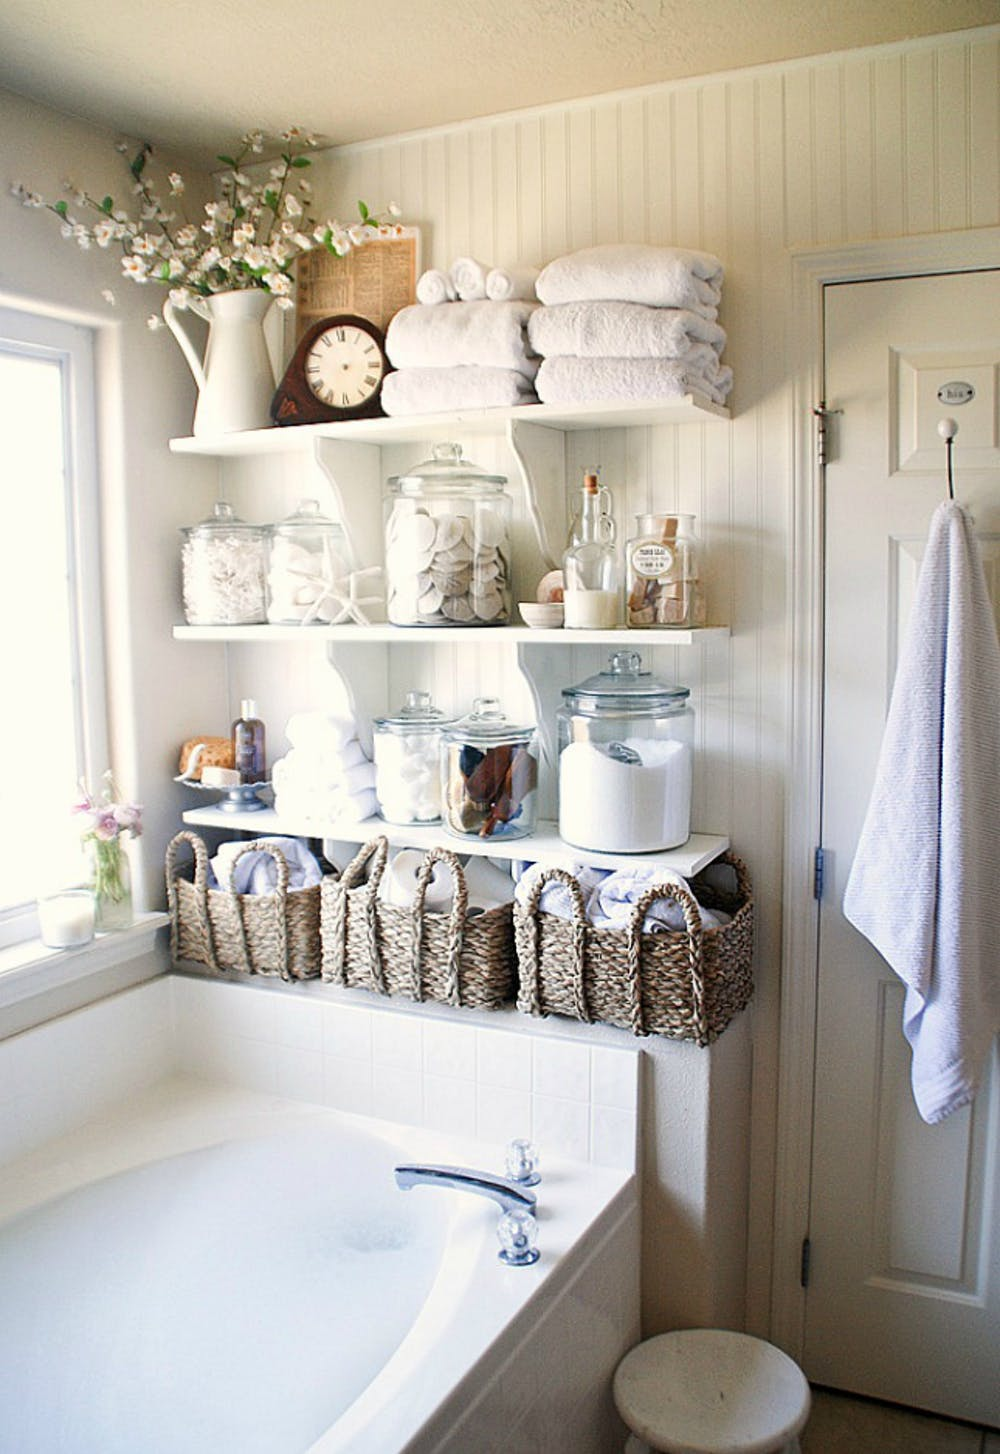 Hygge inspired bathroom open shelves in white woven baskets for towels scented salts on pots white bathtub